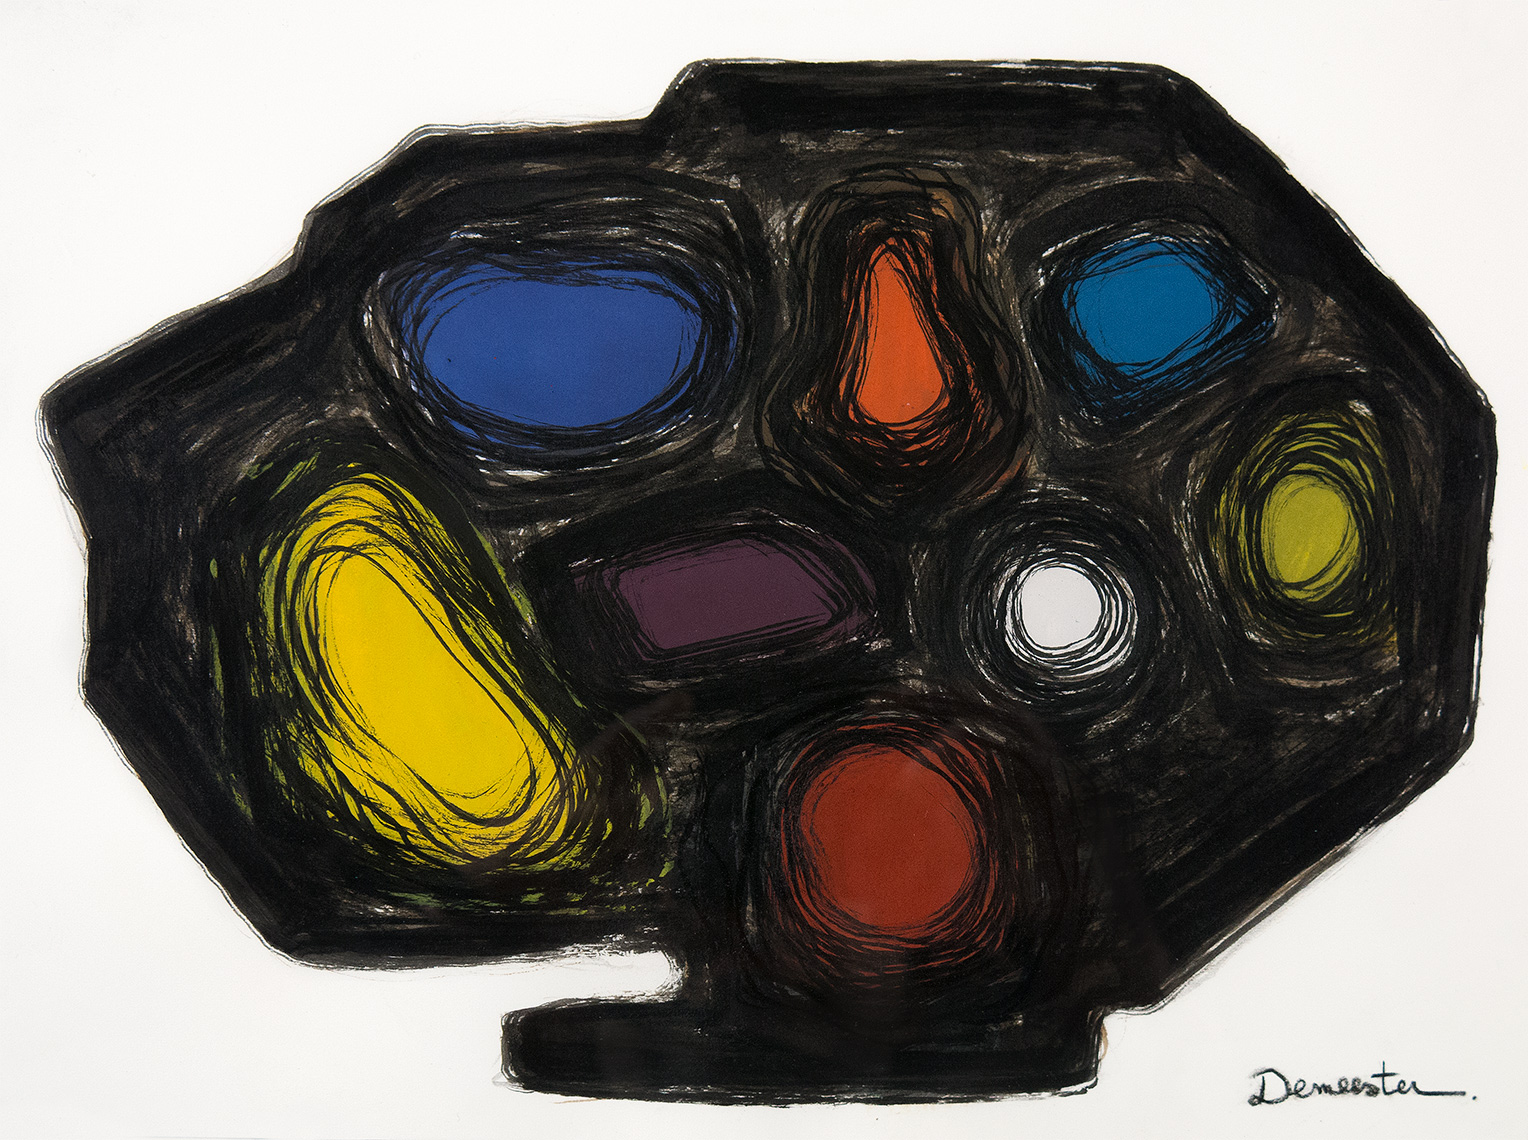 """Athanor N°S1A12"", Series1, gouache, indian ink, walnut ink, charcoal, crayons 30.48 by 22.86 cm /12  by 9 inches 1/5/2017, ©Pascal Demeester"